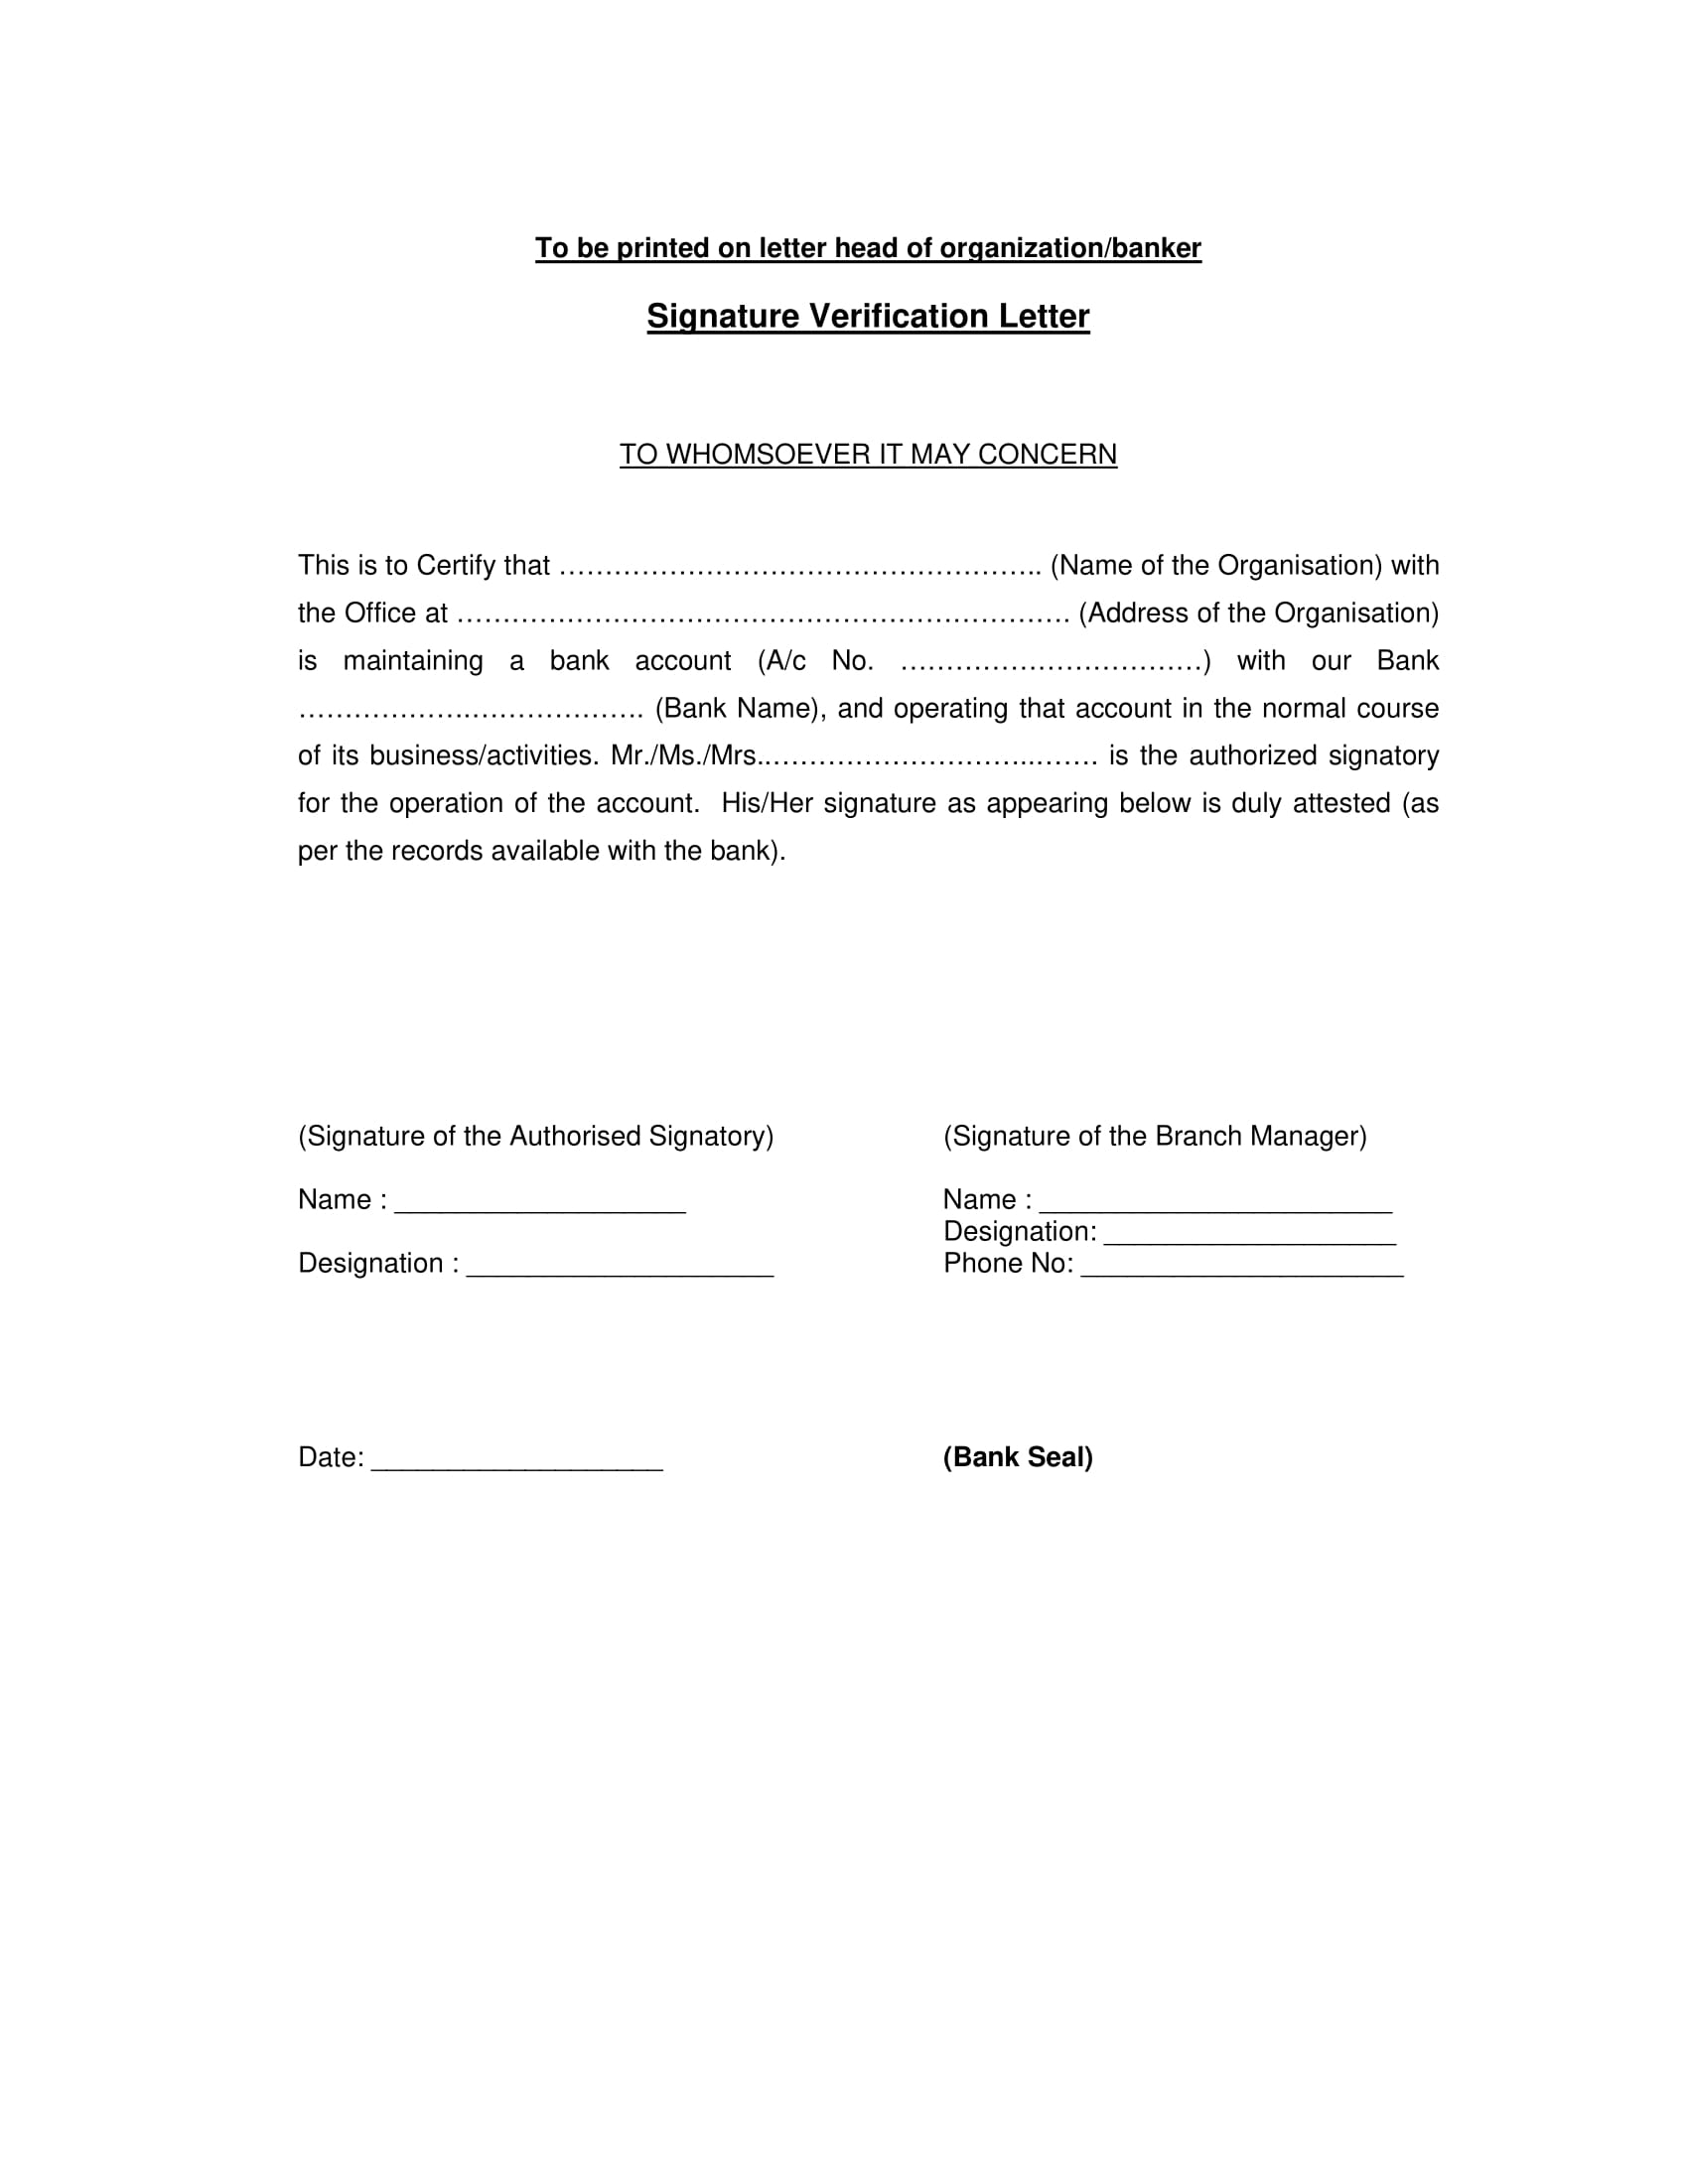 signature verification letter example